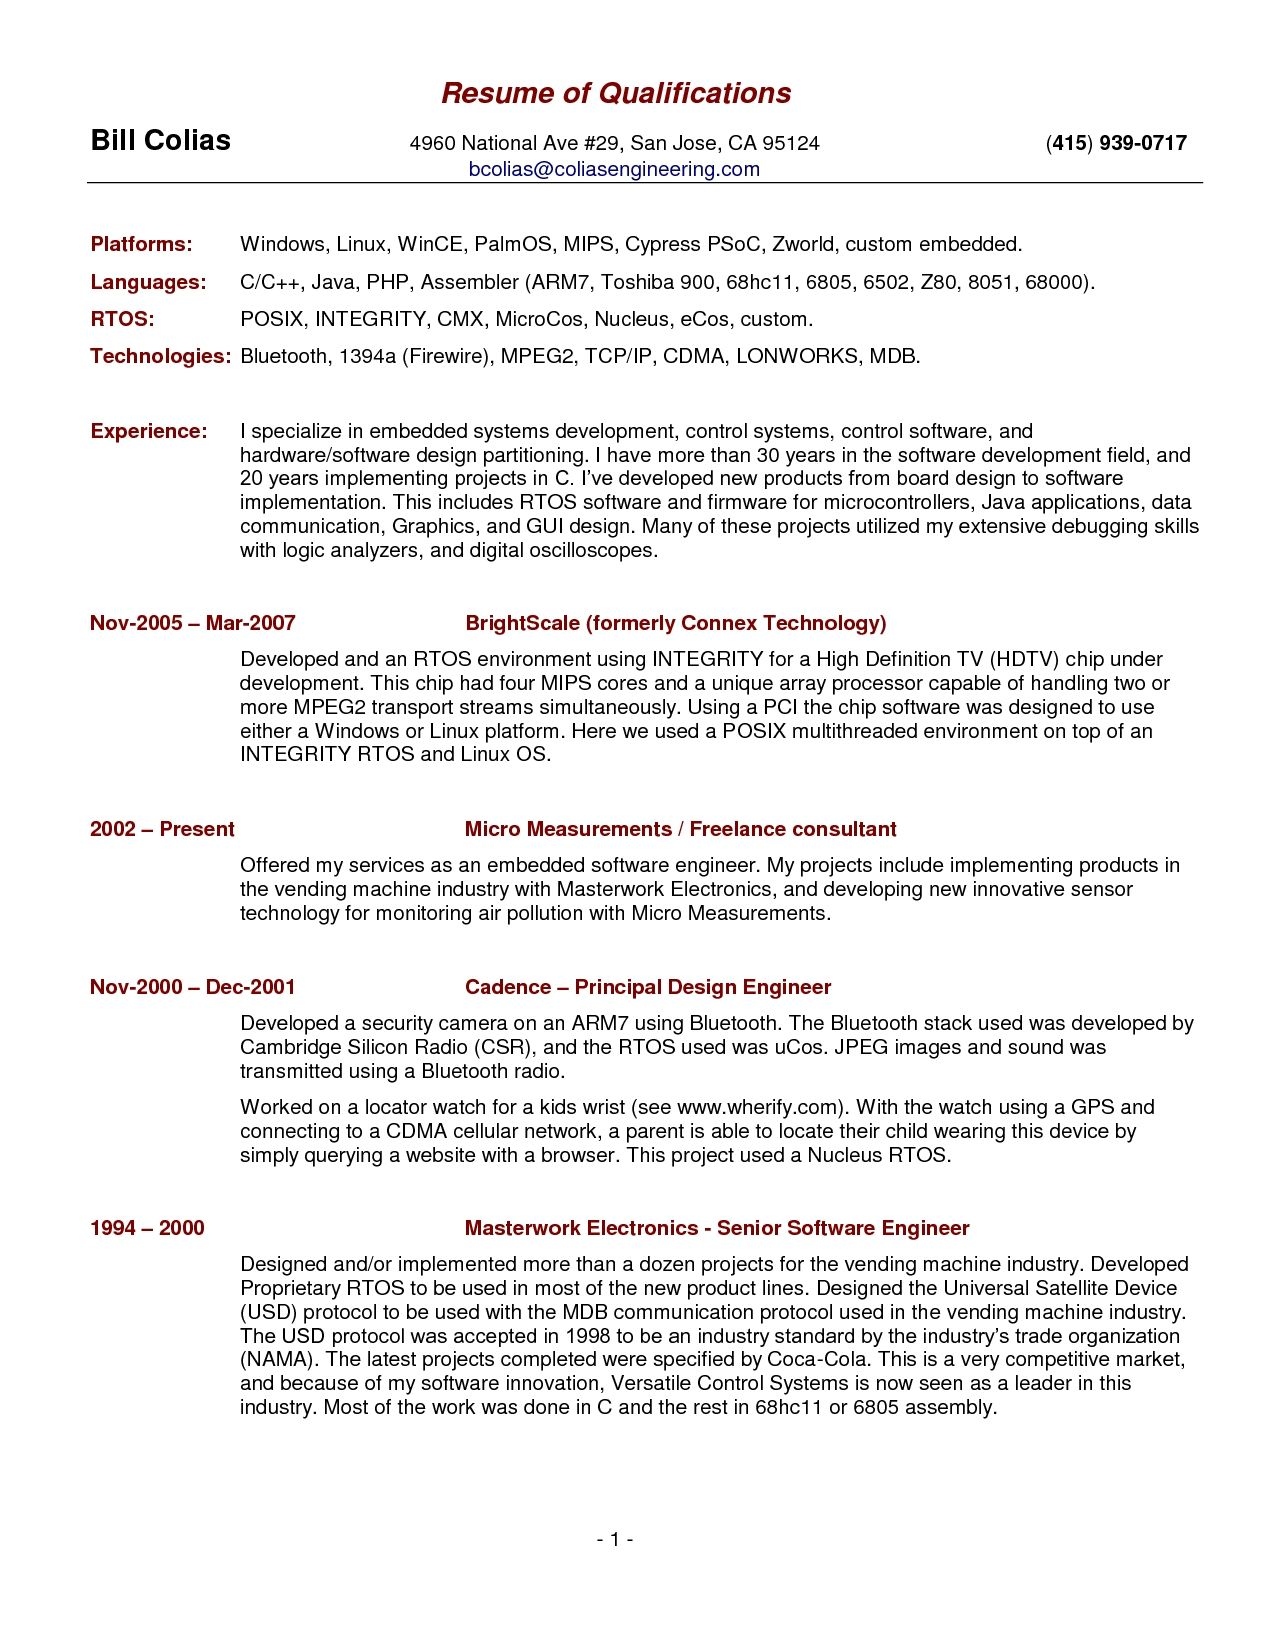 Skill Resume Template Qualifications For A Resume Examples 7F8Ea3A2A New Resume Skills